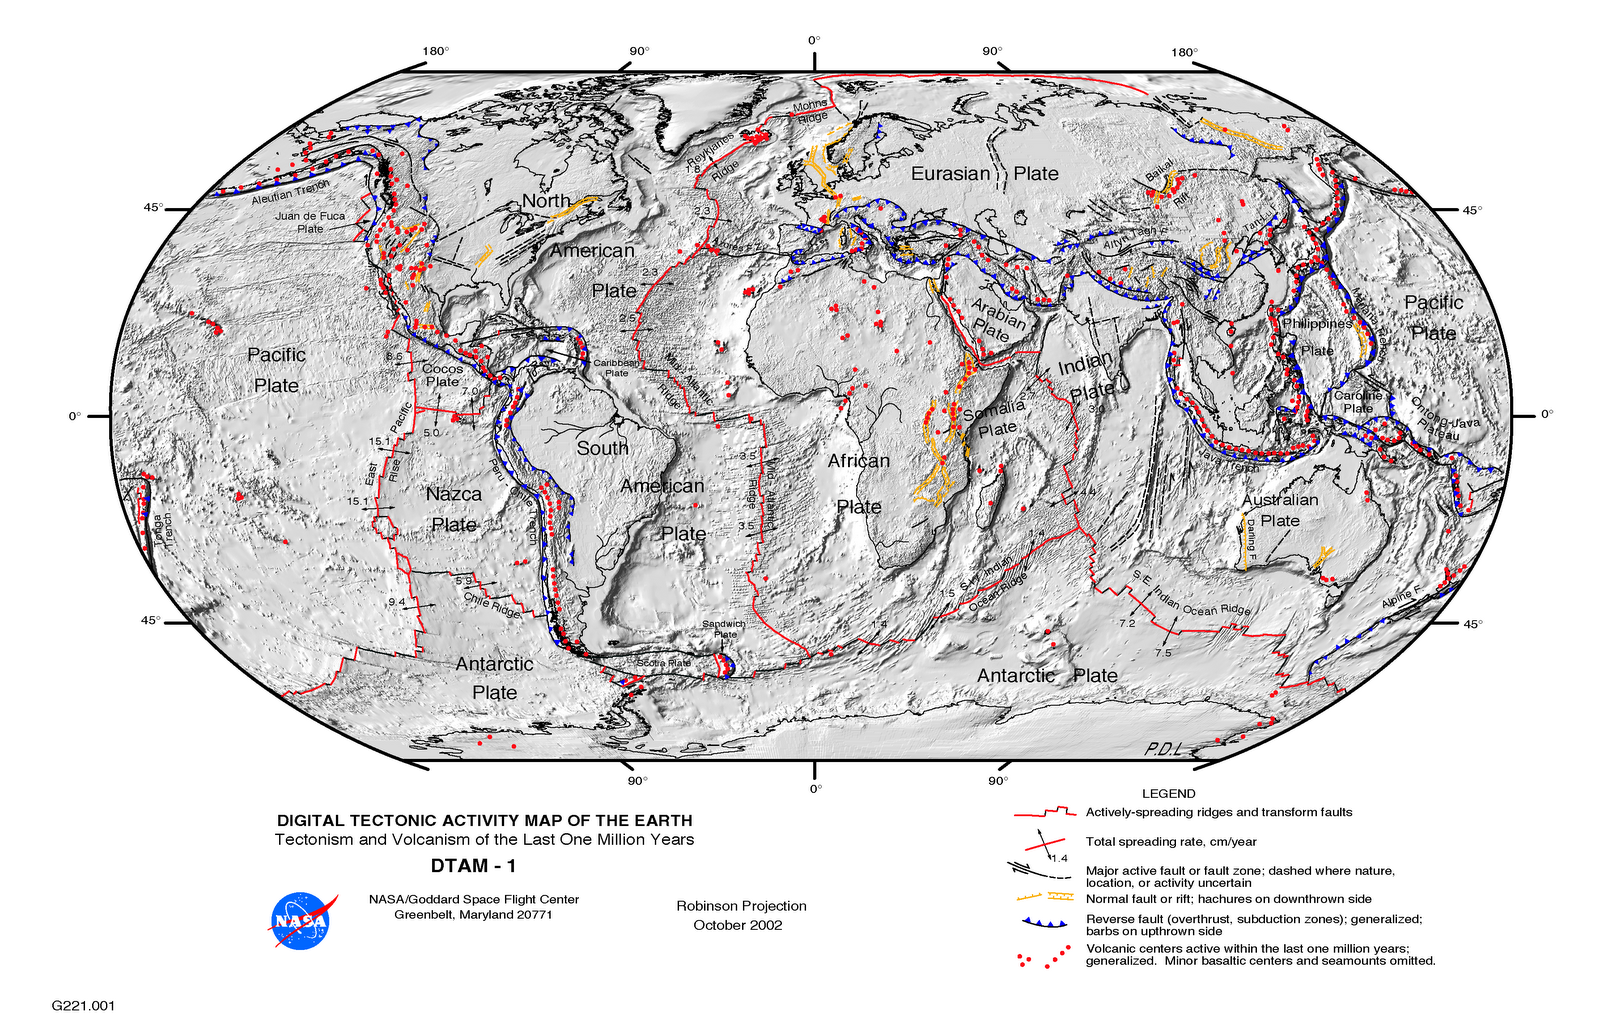 Digital Tectonic Activity Map Of The Earth